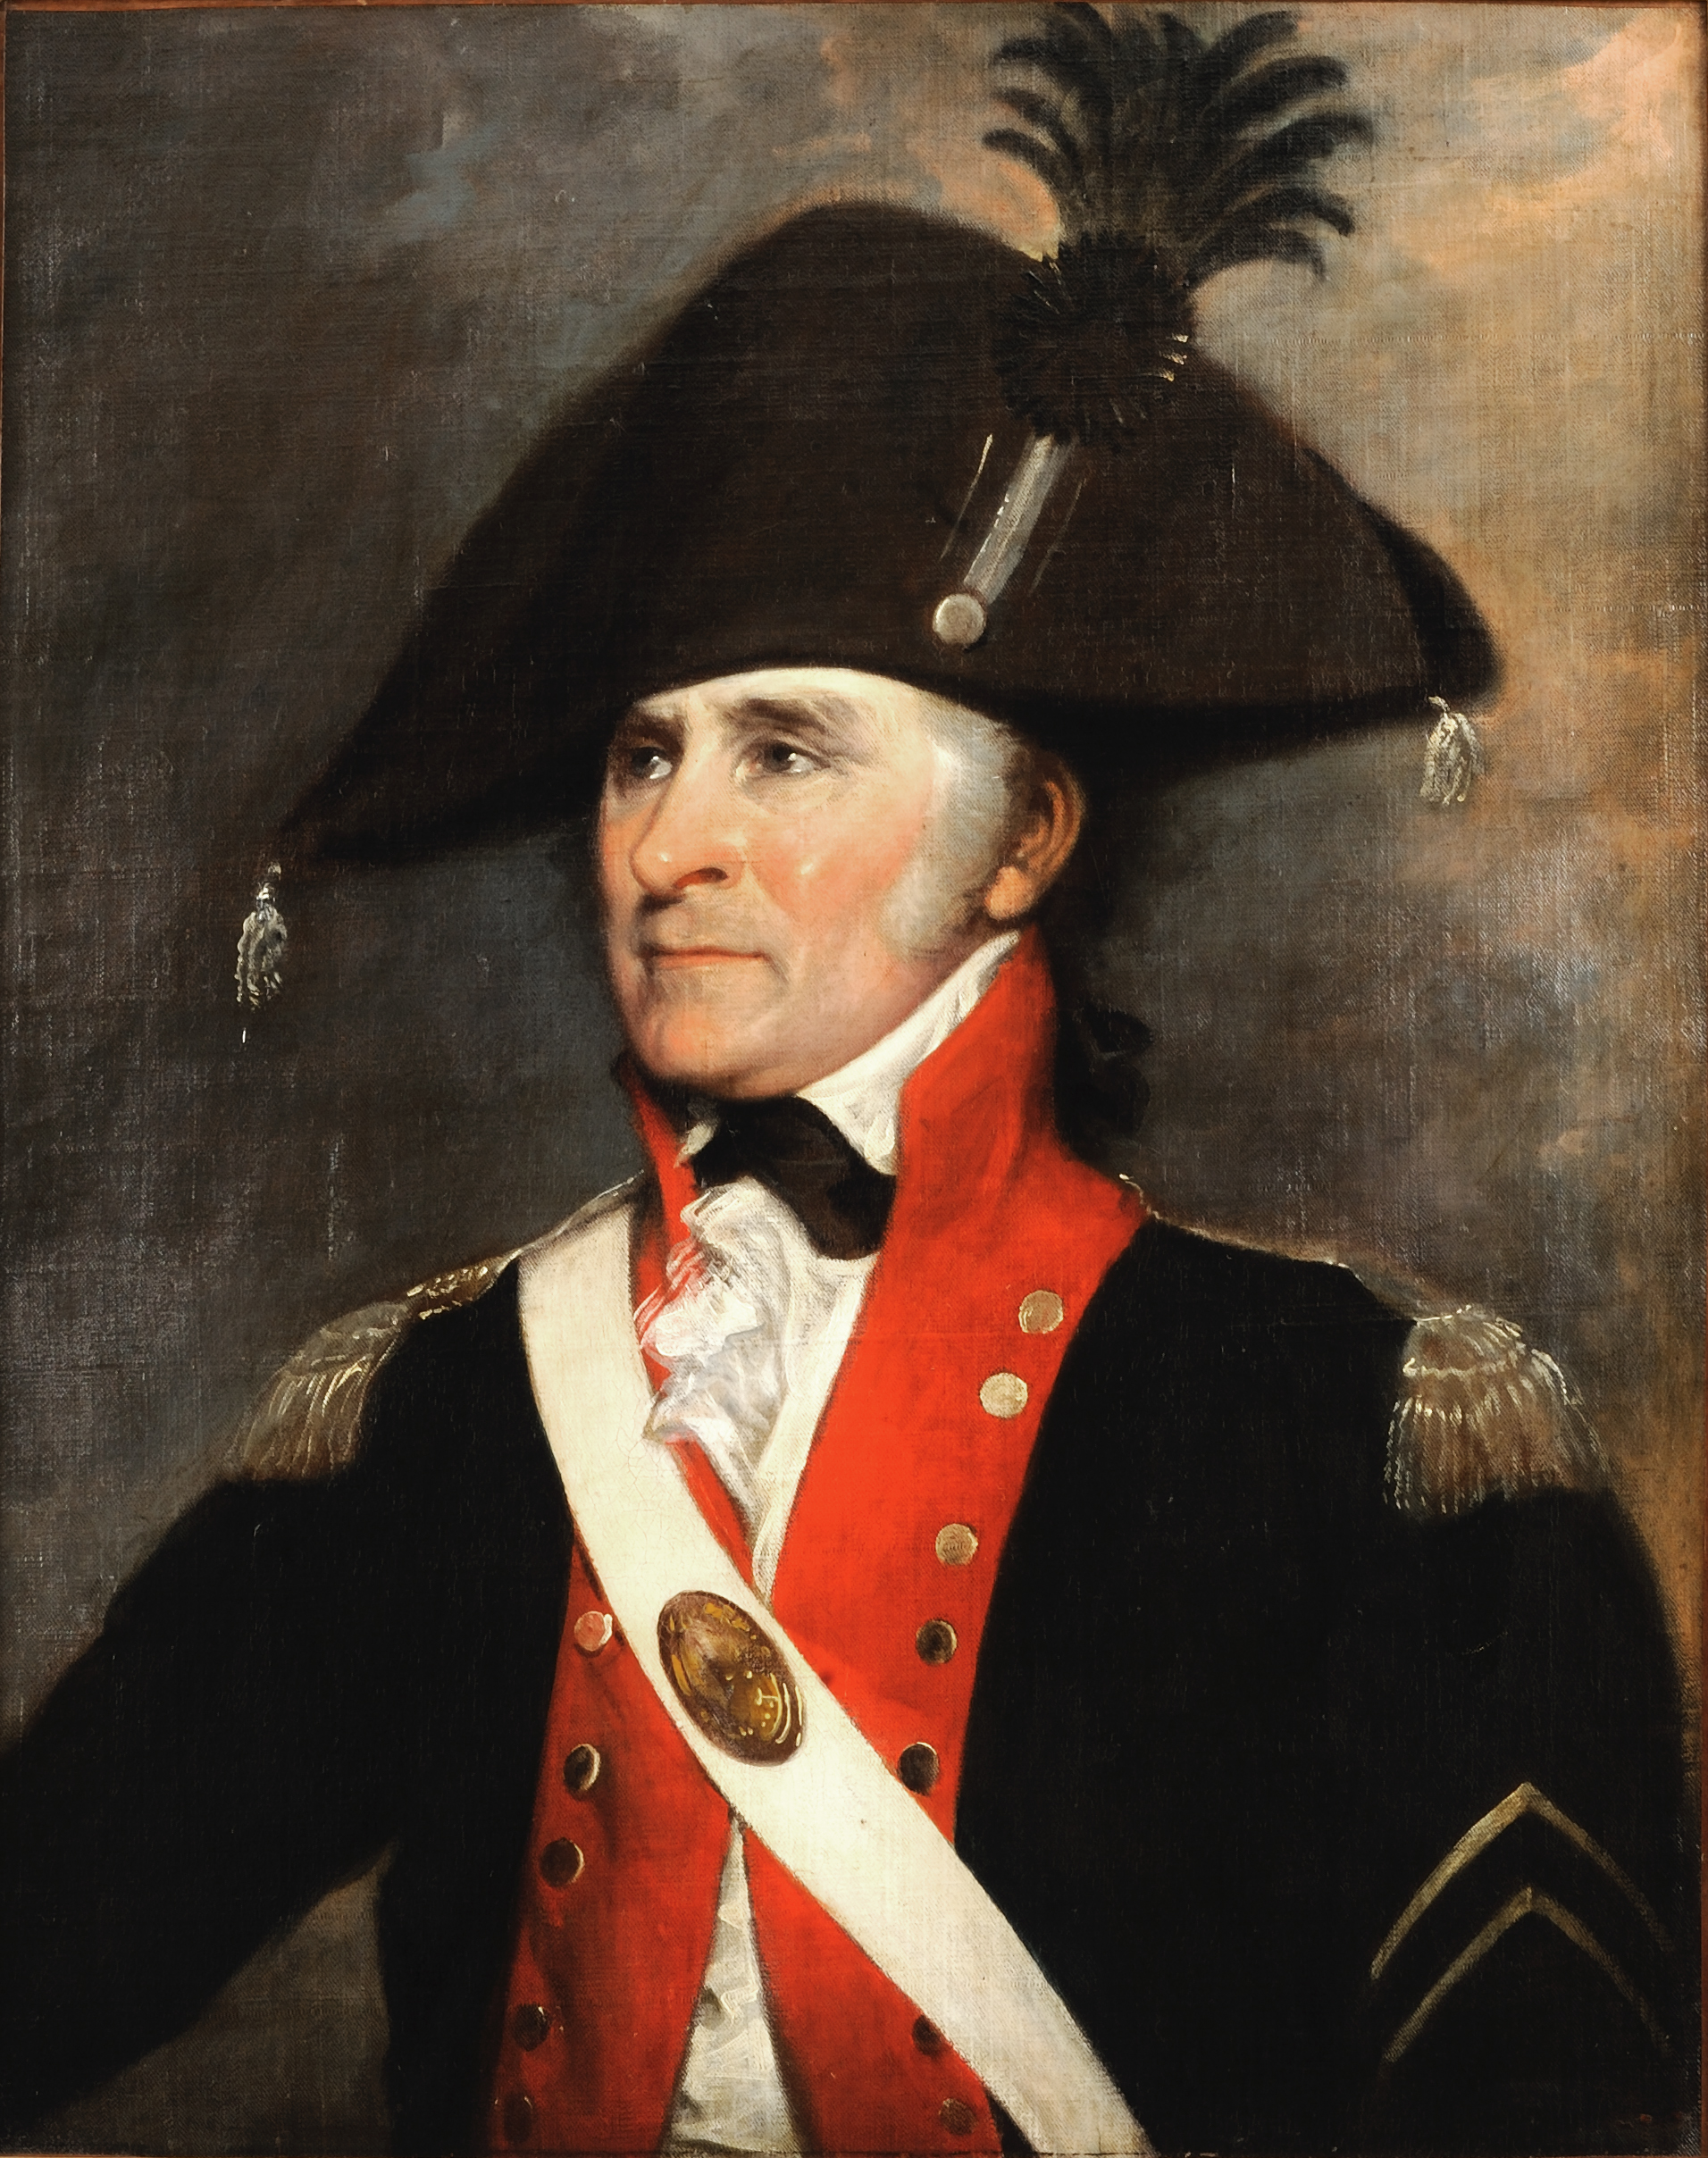 Bryan Rossiter was a New York City fruit seller and sergeant at arms of the New York State Society of the Cincinnati when John Trumbull painted this portrait of him.